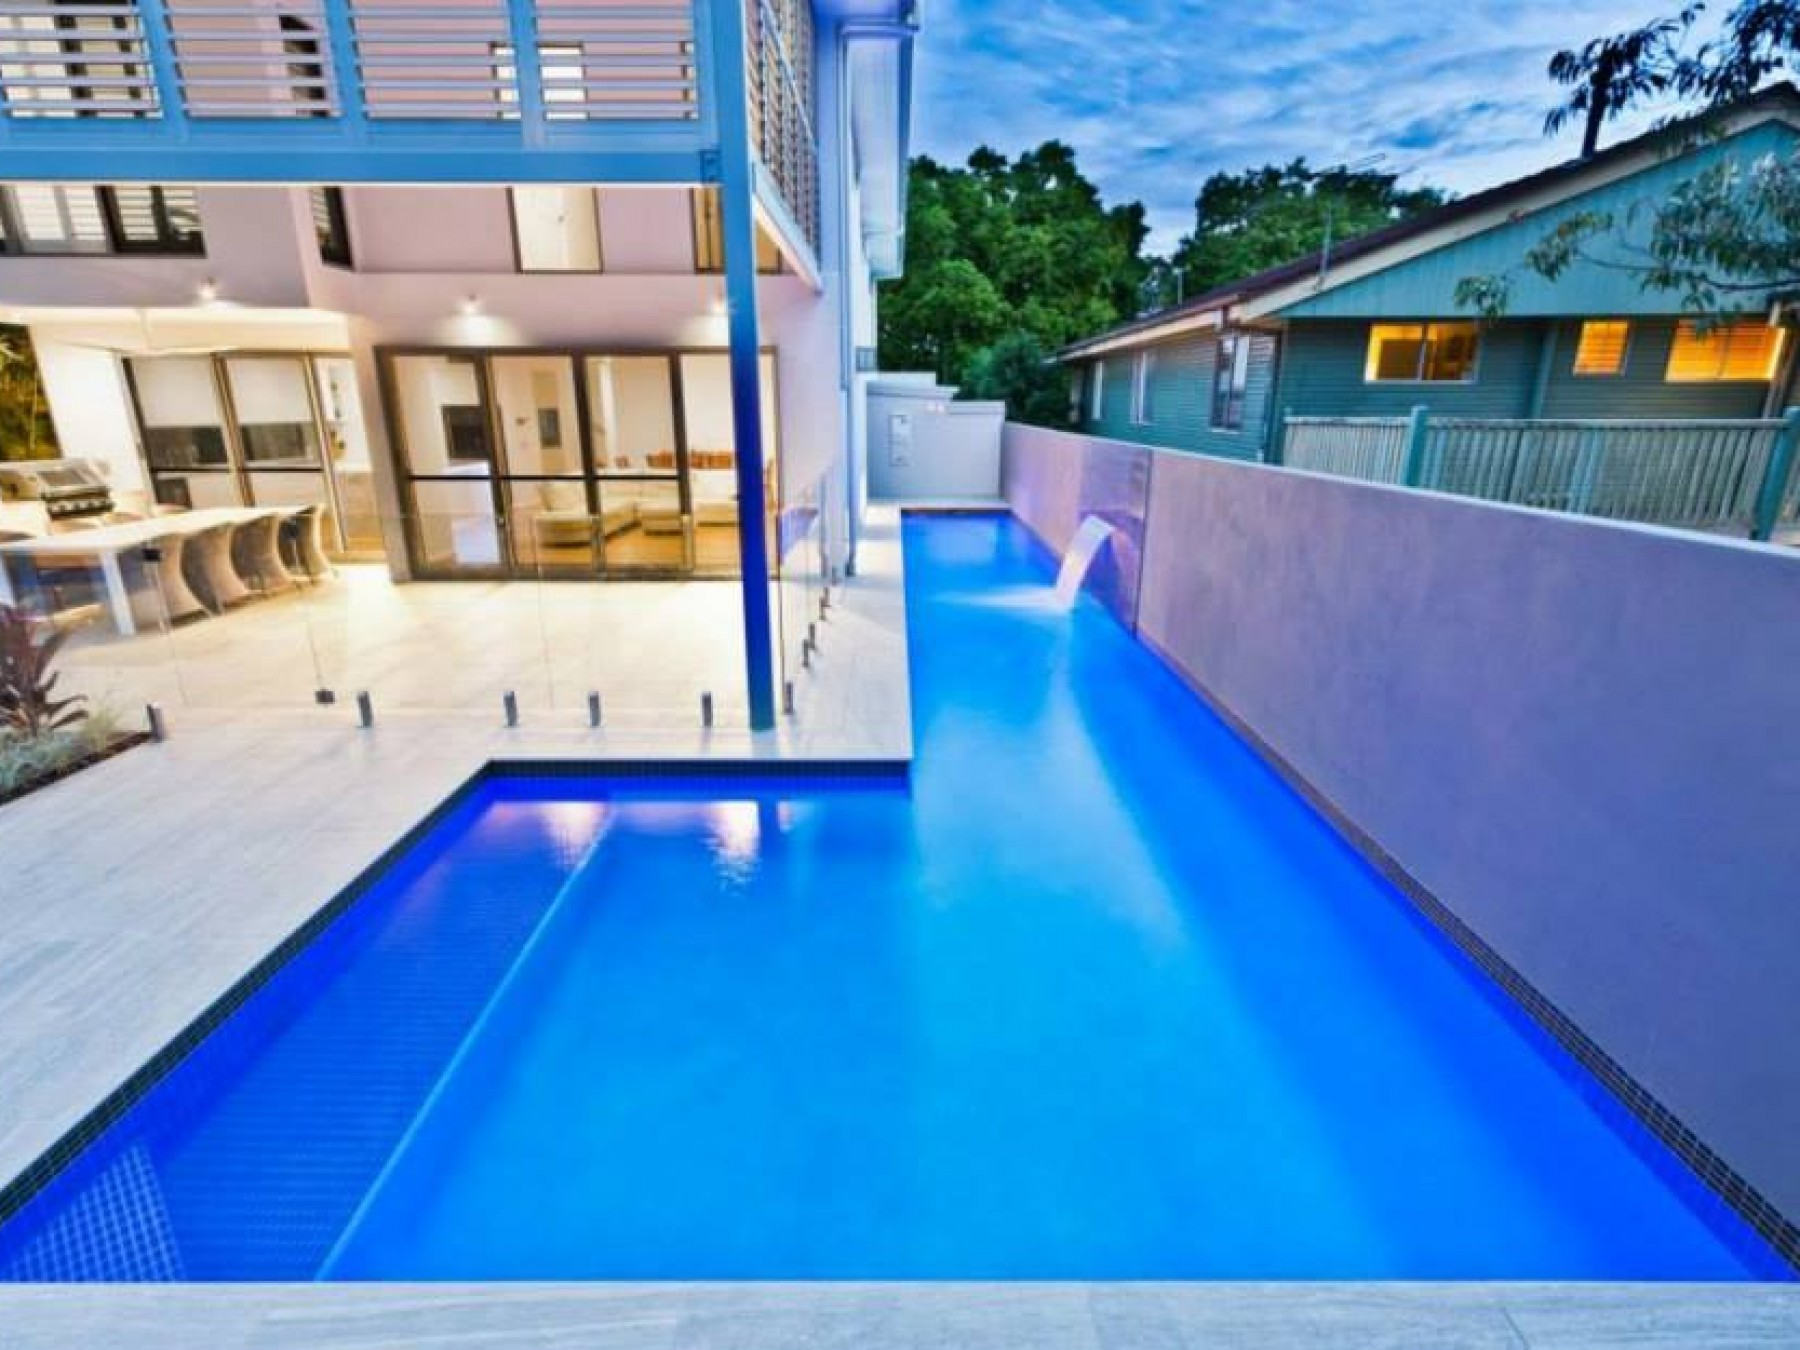 Selling or Leasing a pool in Ormeau